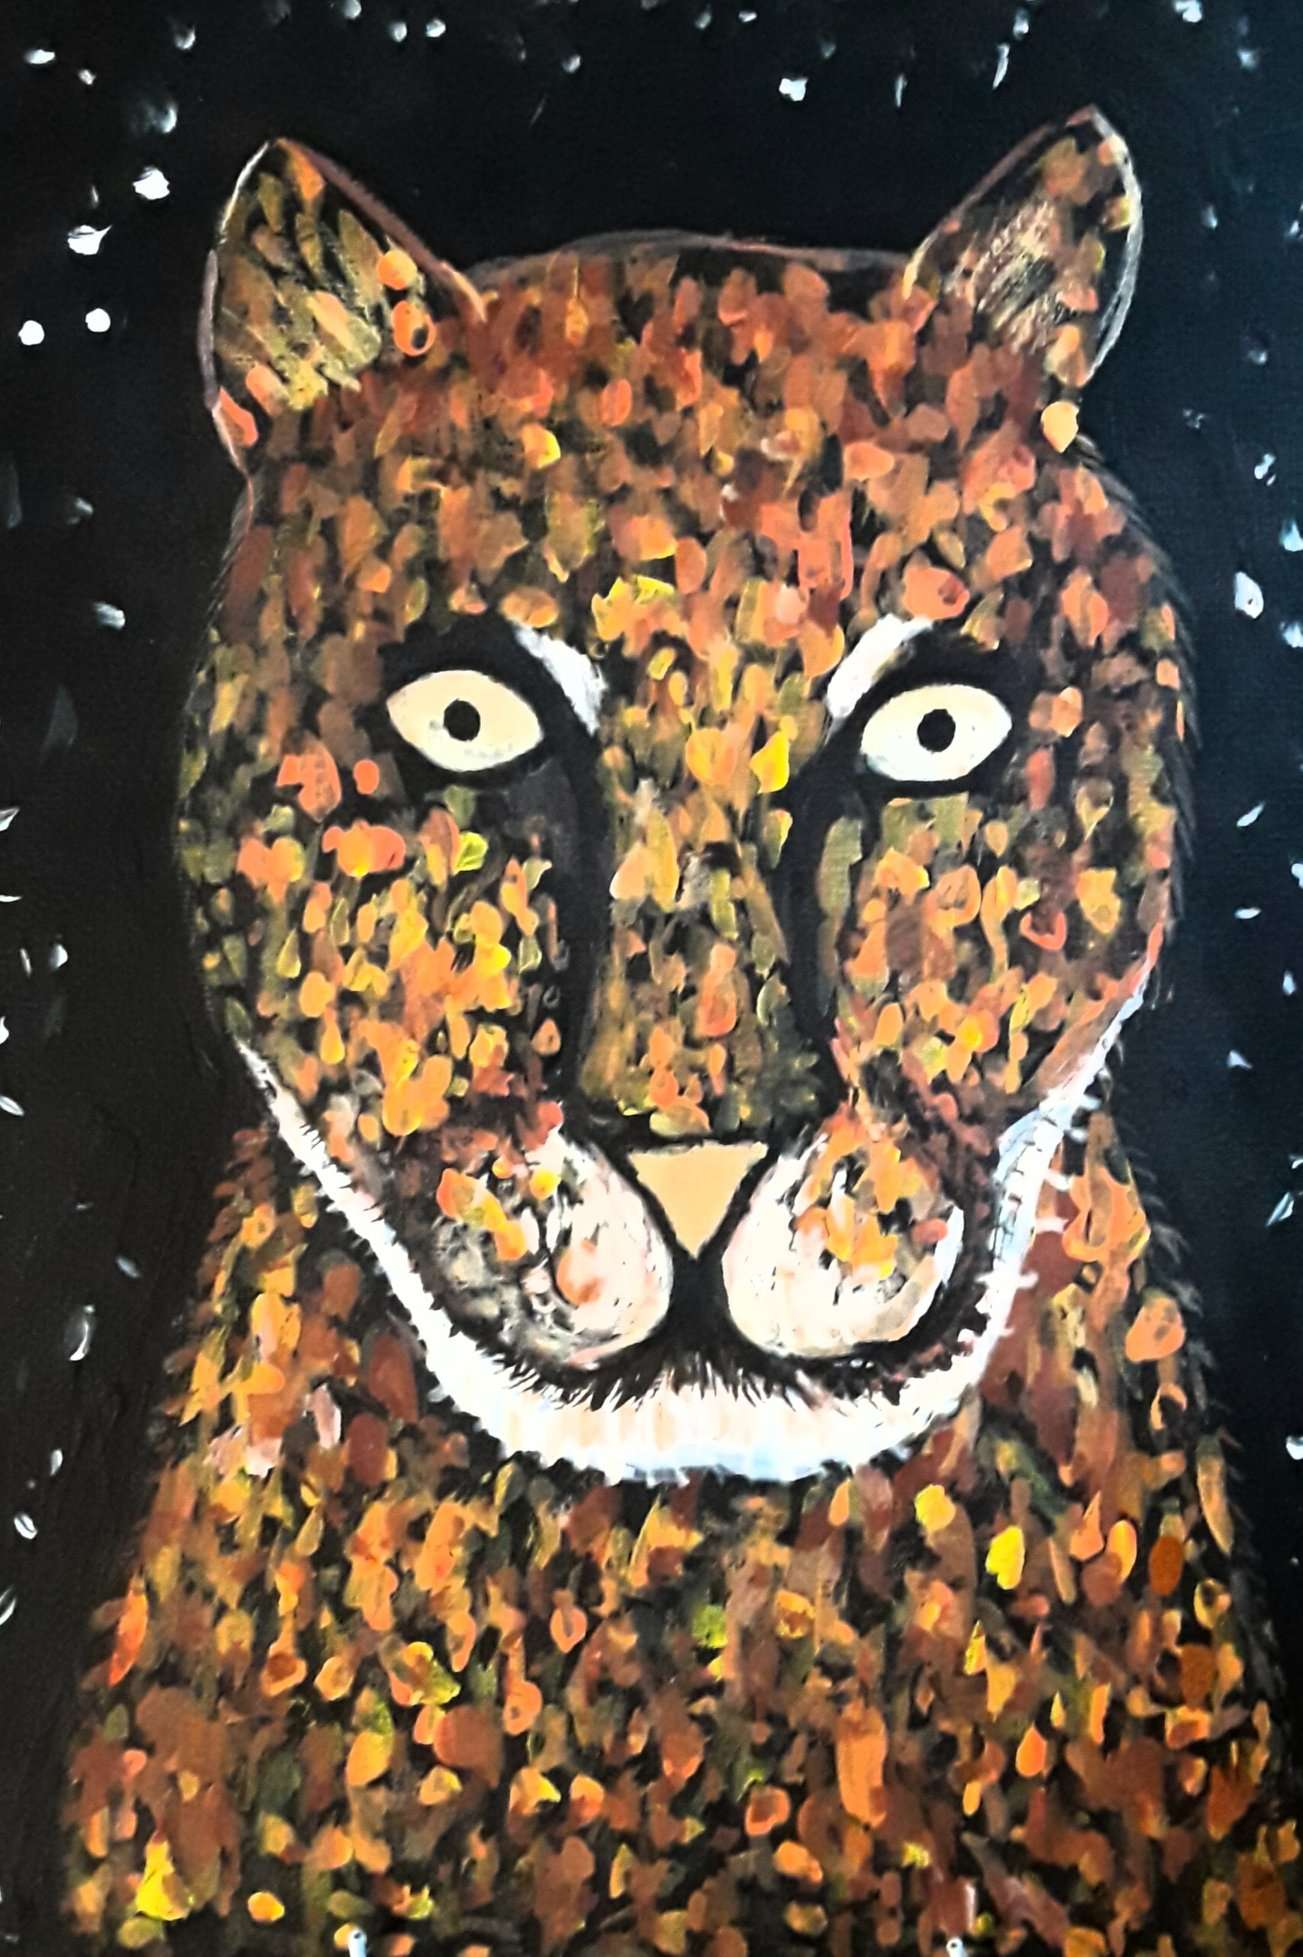 Konstantin, age 14. Acrylic painting on canvas.